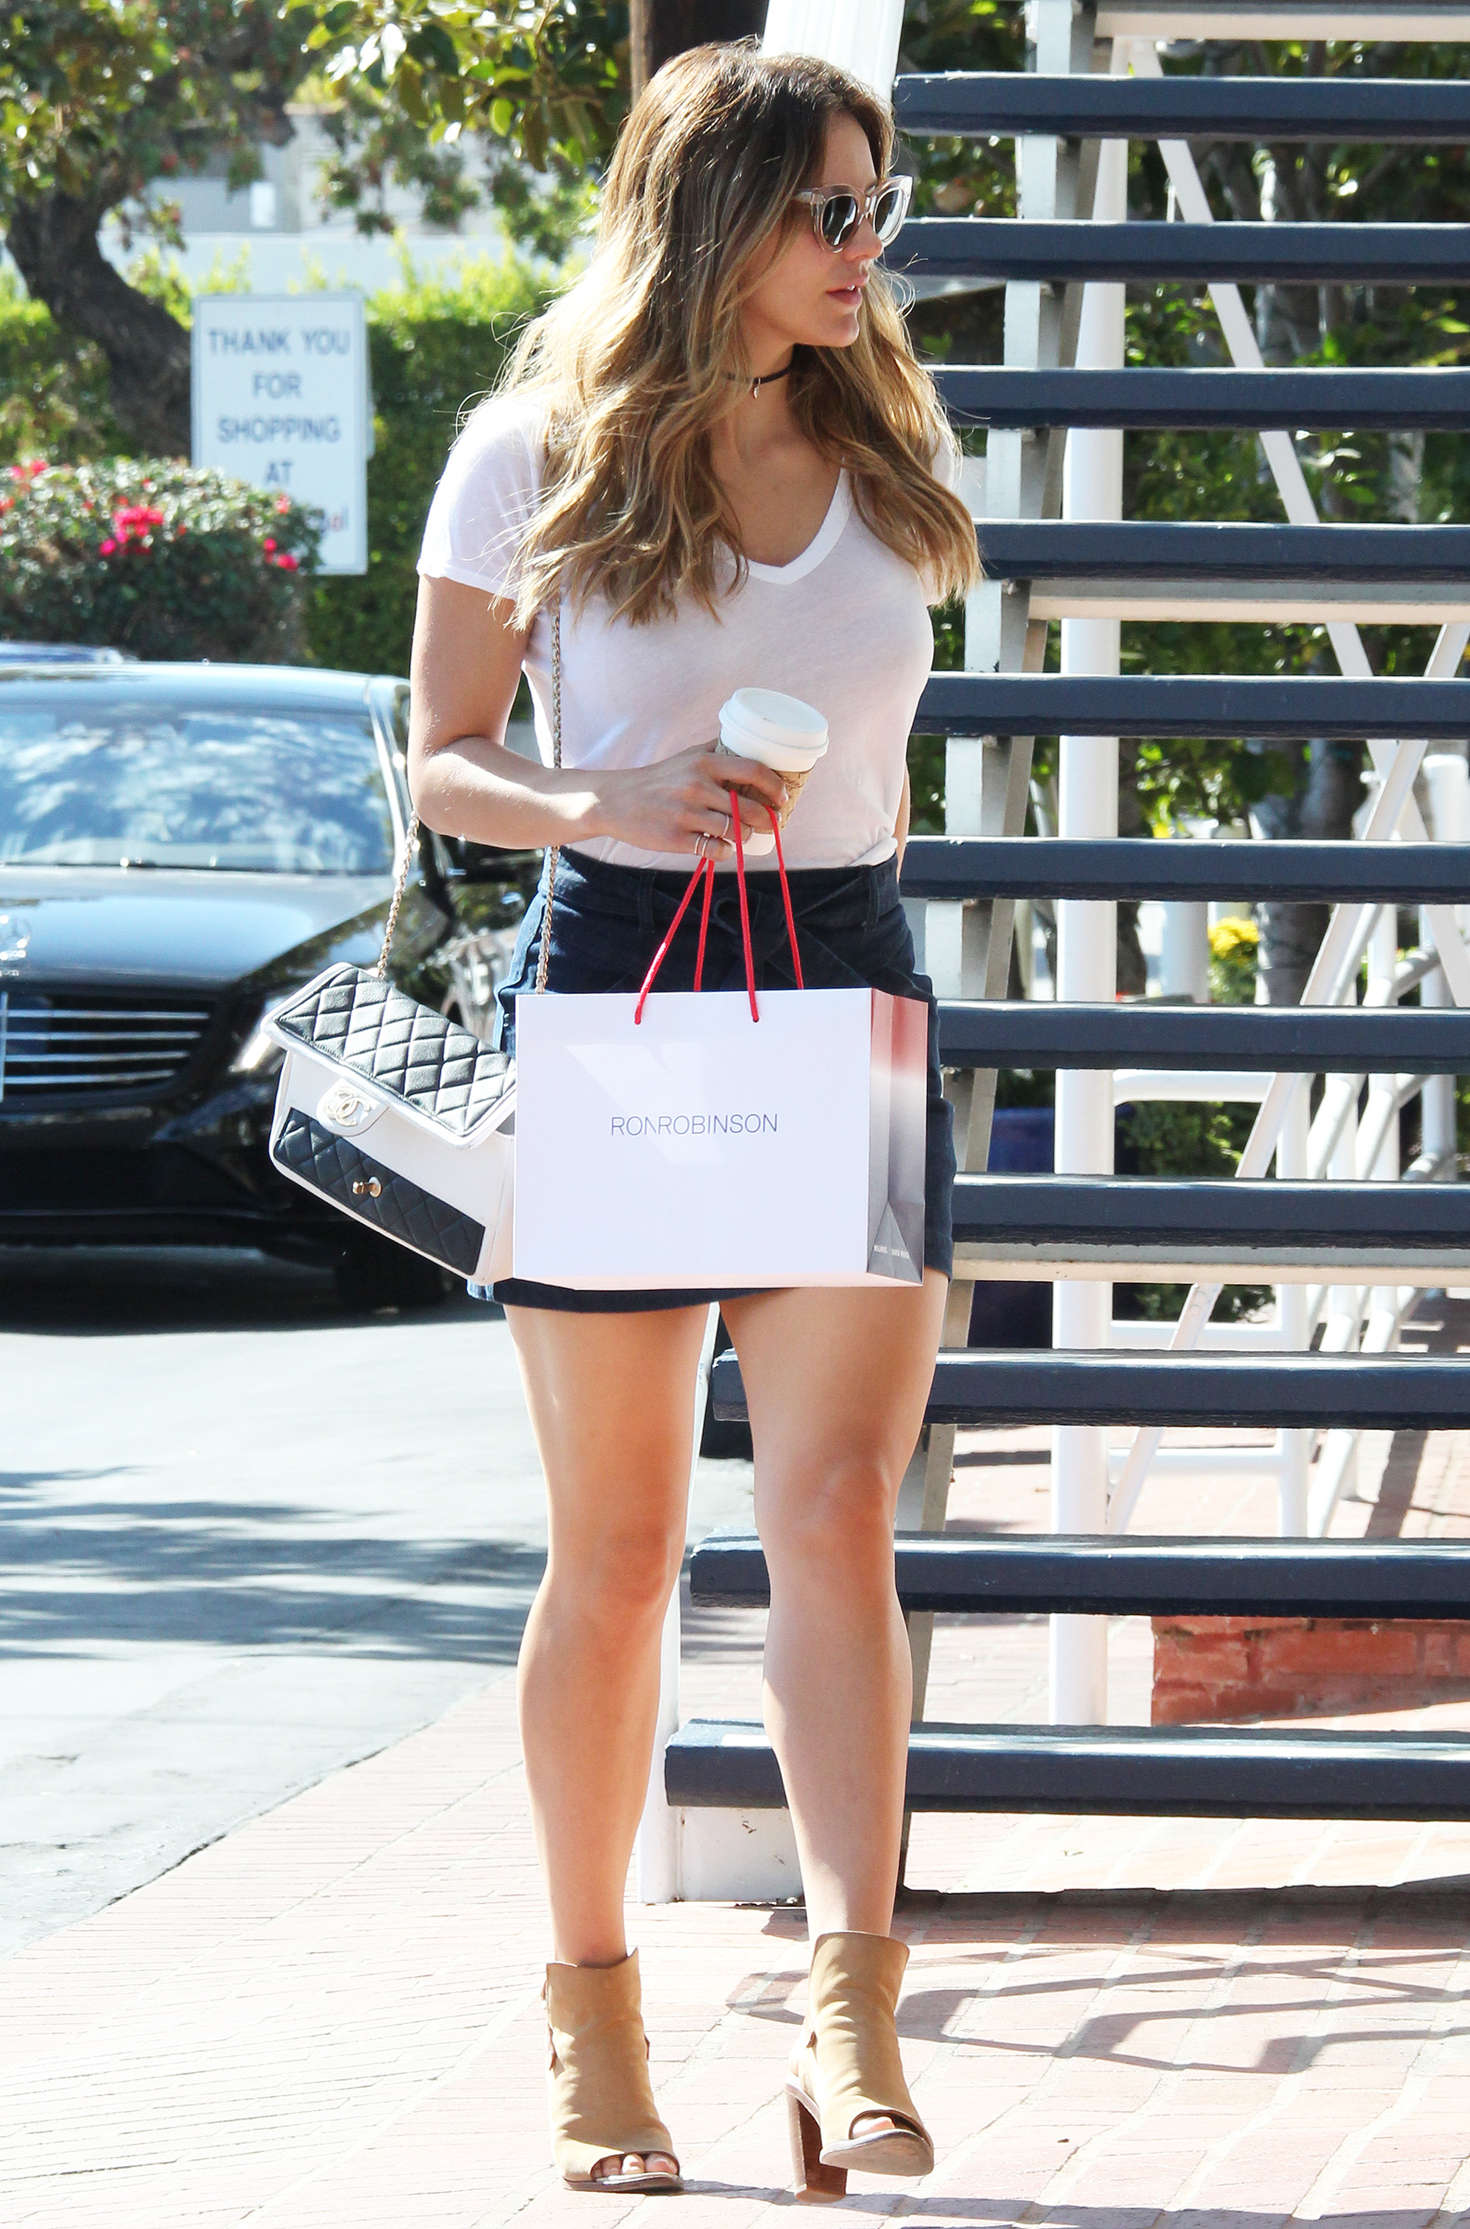 Katharine McPhee in Jeans Mini Skirt Shopping -03 - GotCeleb